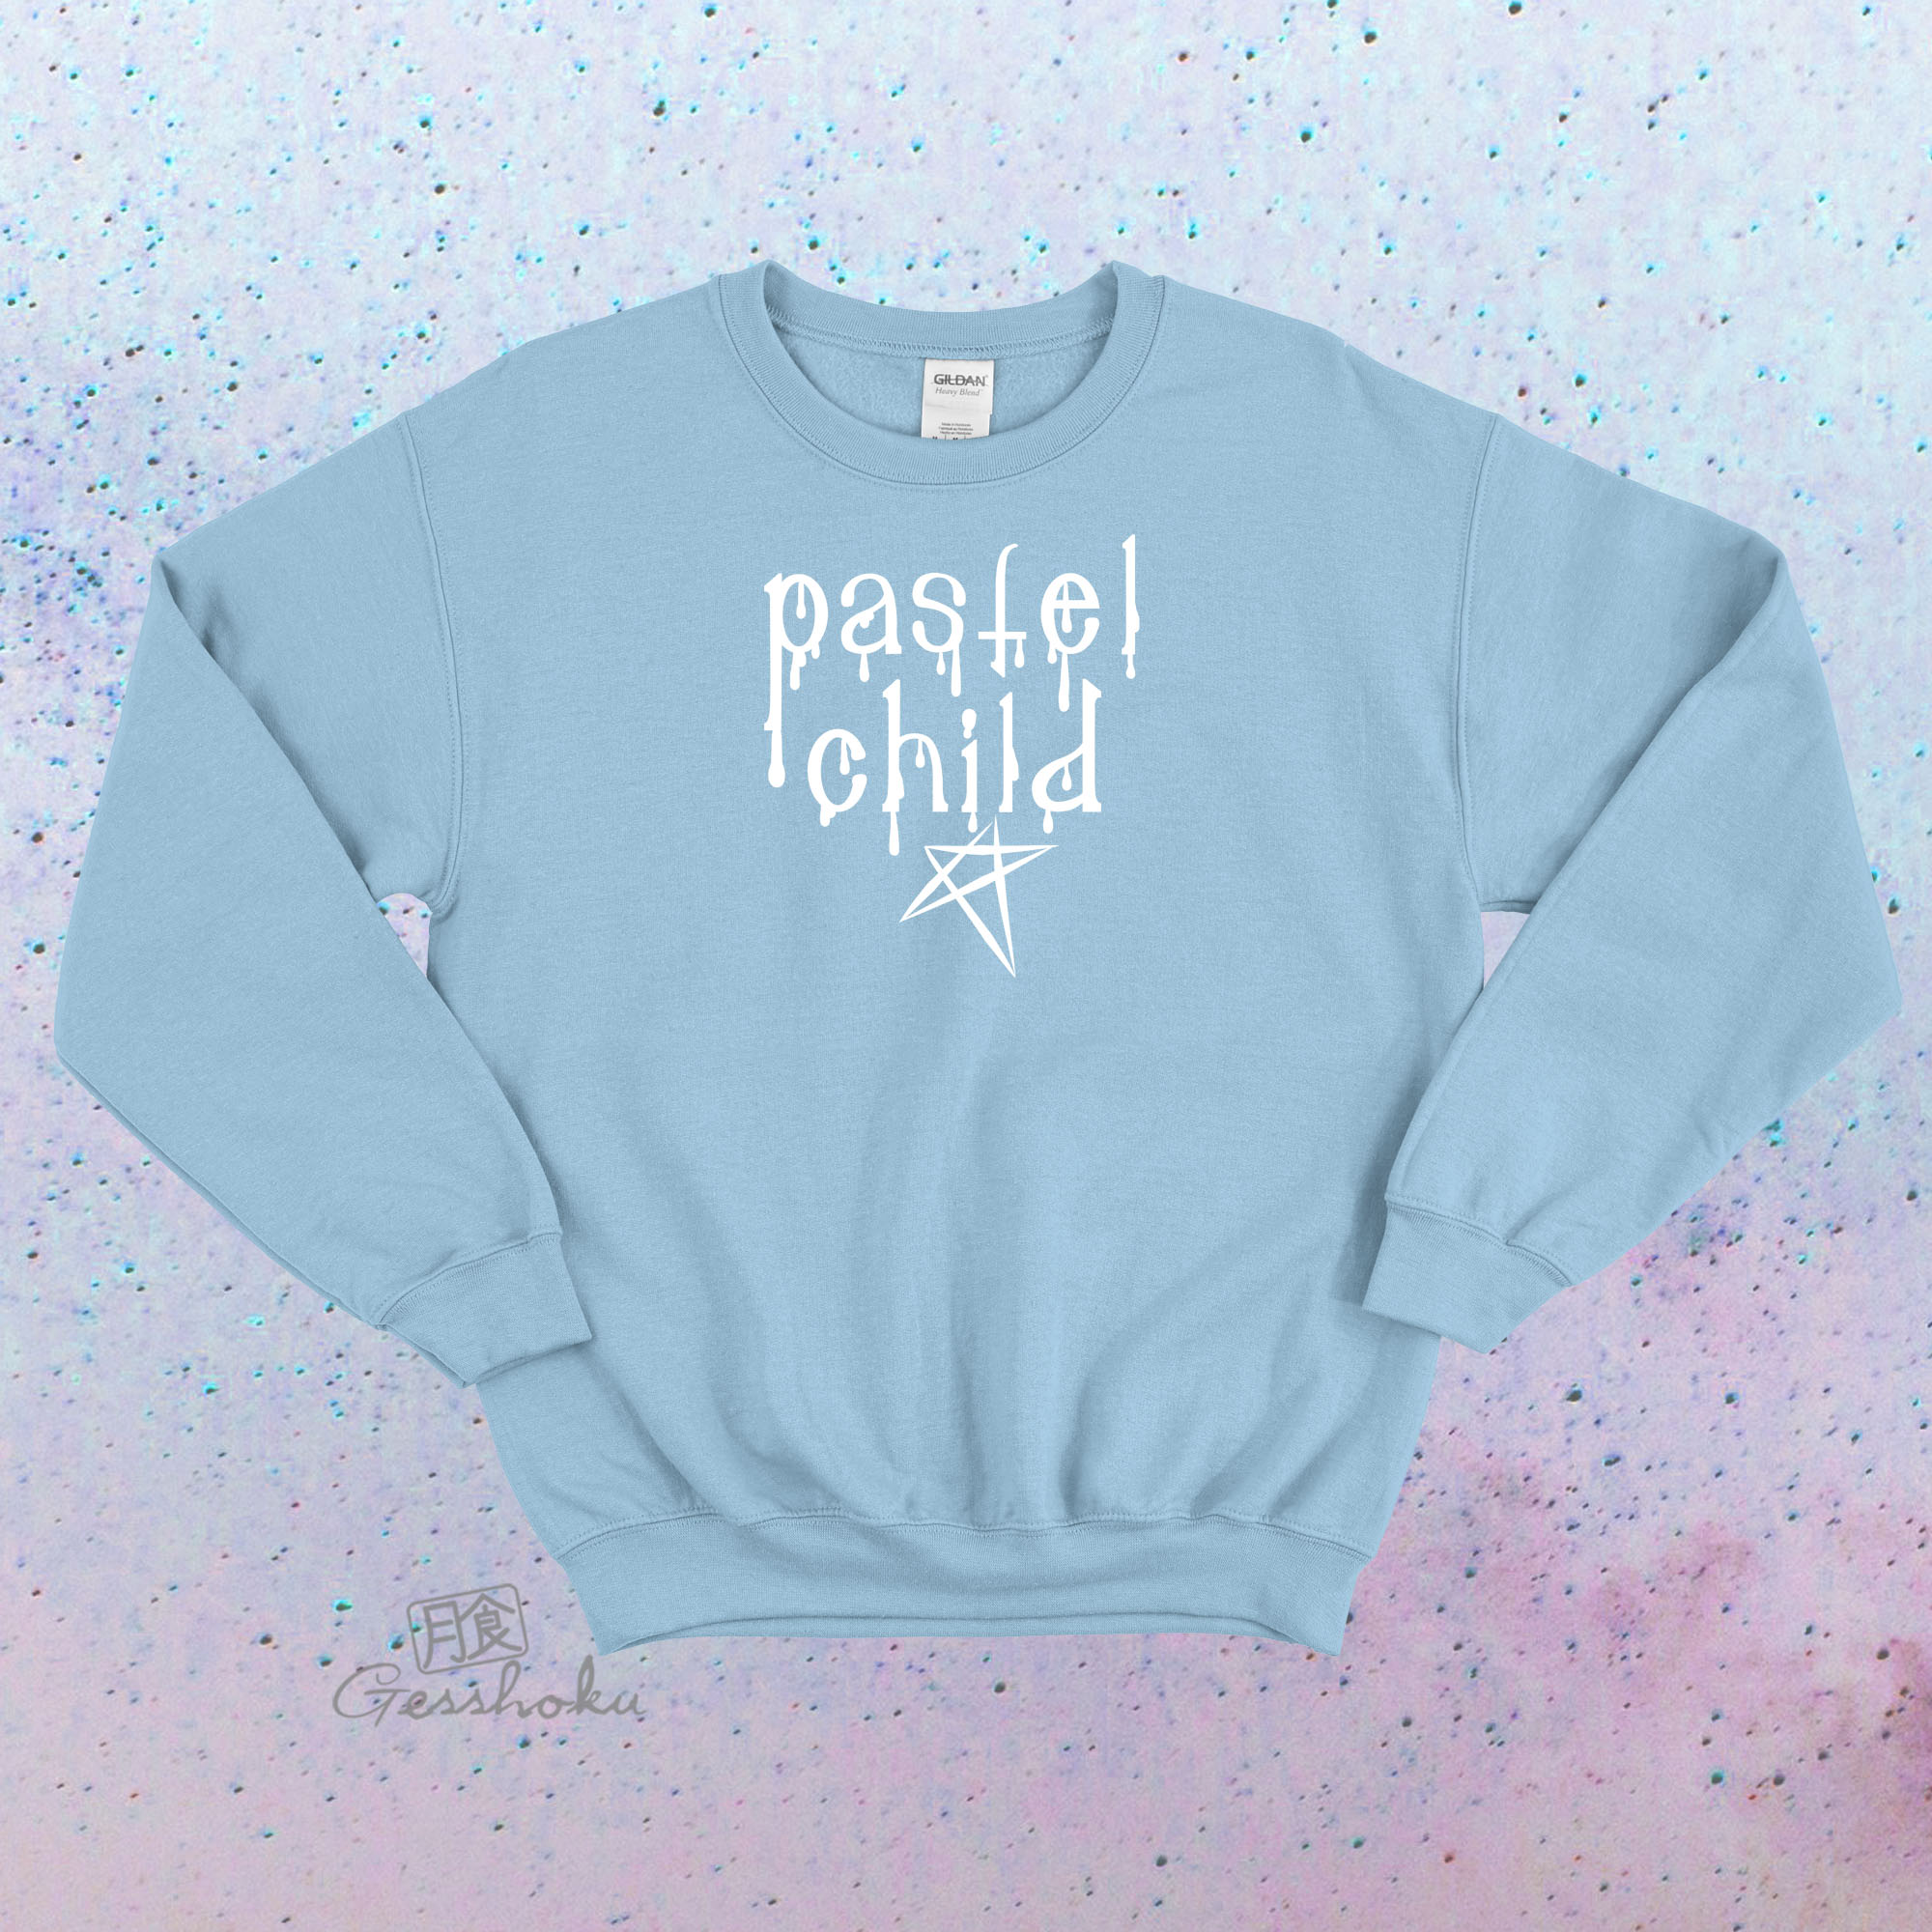 Pastel Child Crewneck Sweatshirt - Light Blue